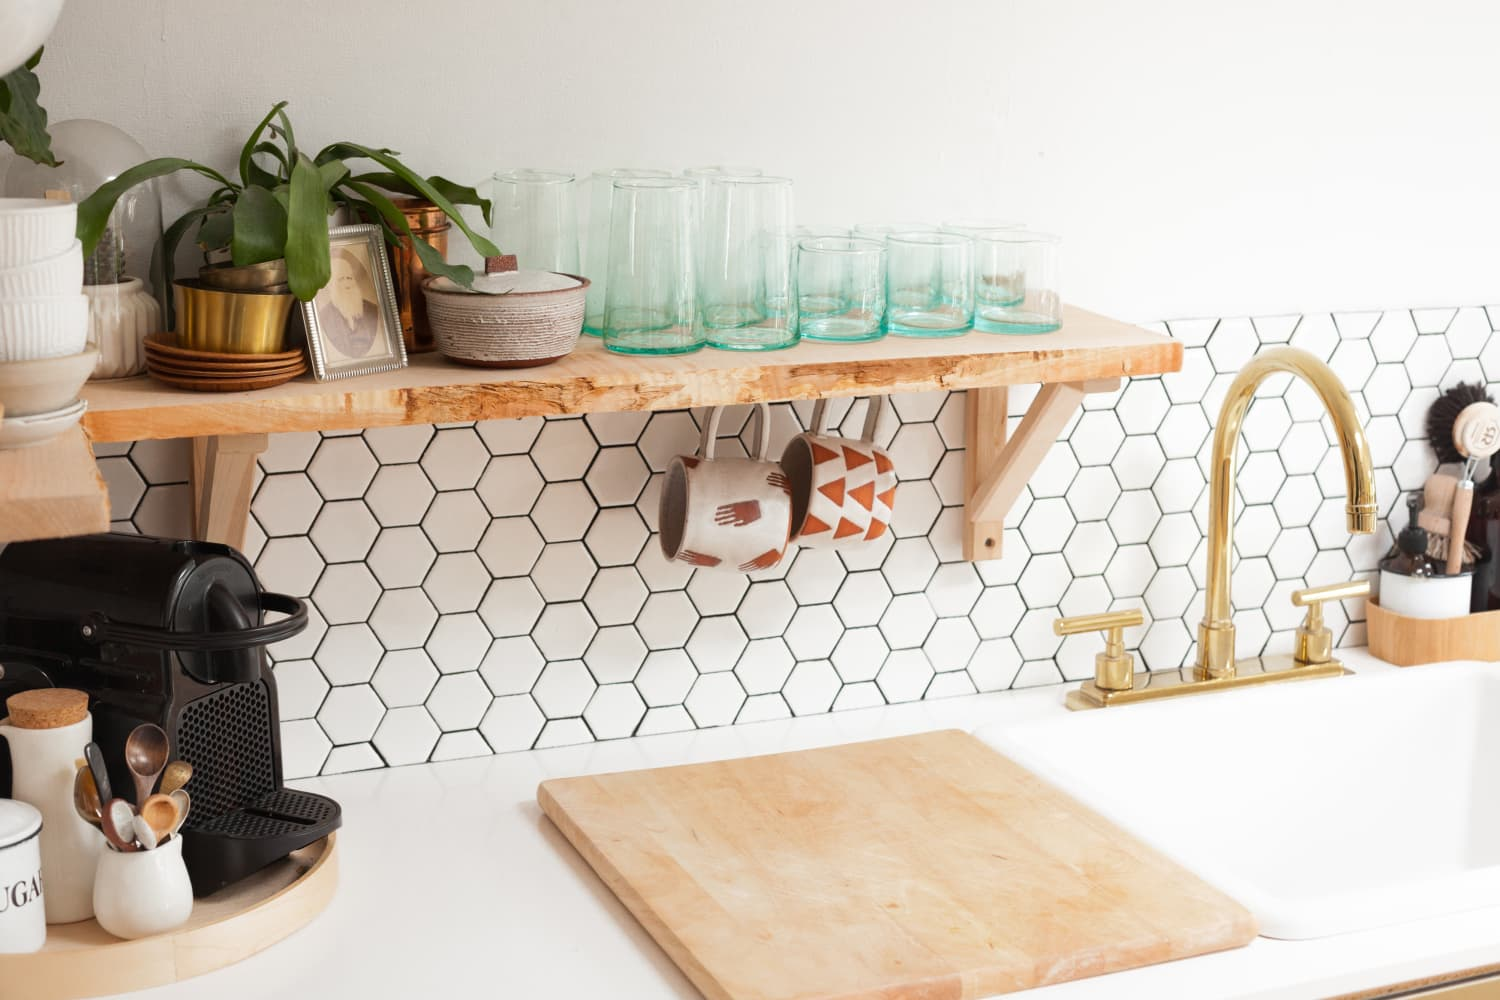 3 Organizing Strategies That'll Work in Every Small Kitchen